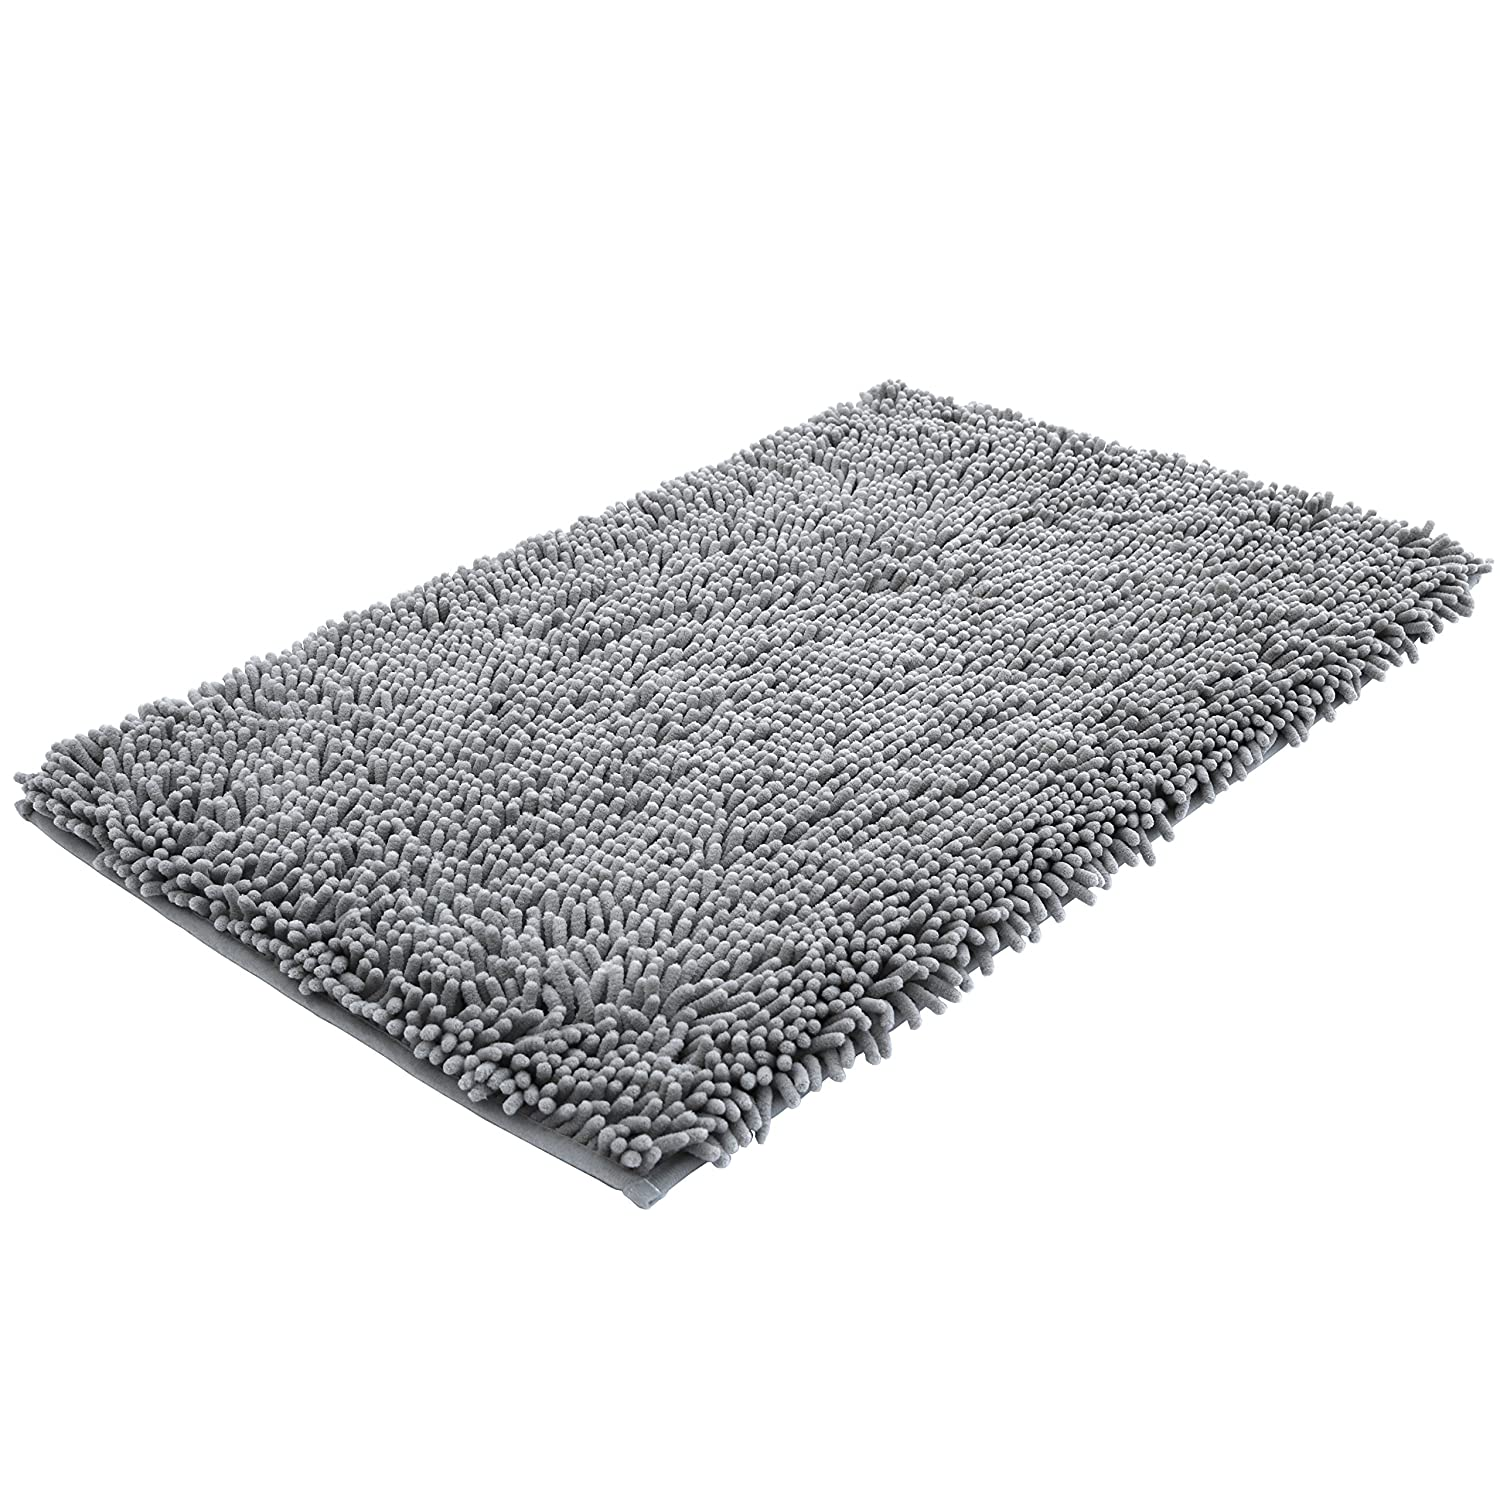 Amazon Com Super Soft Bath Mat Microfiber Shag Bathroom Rugs Non